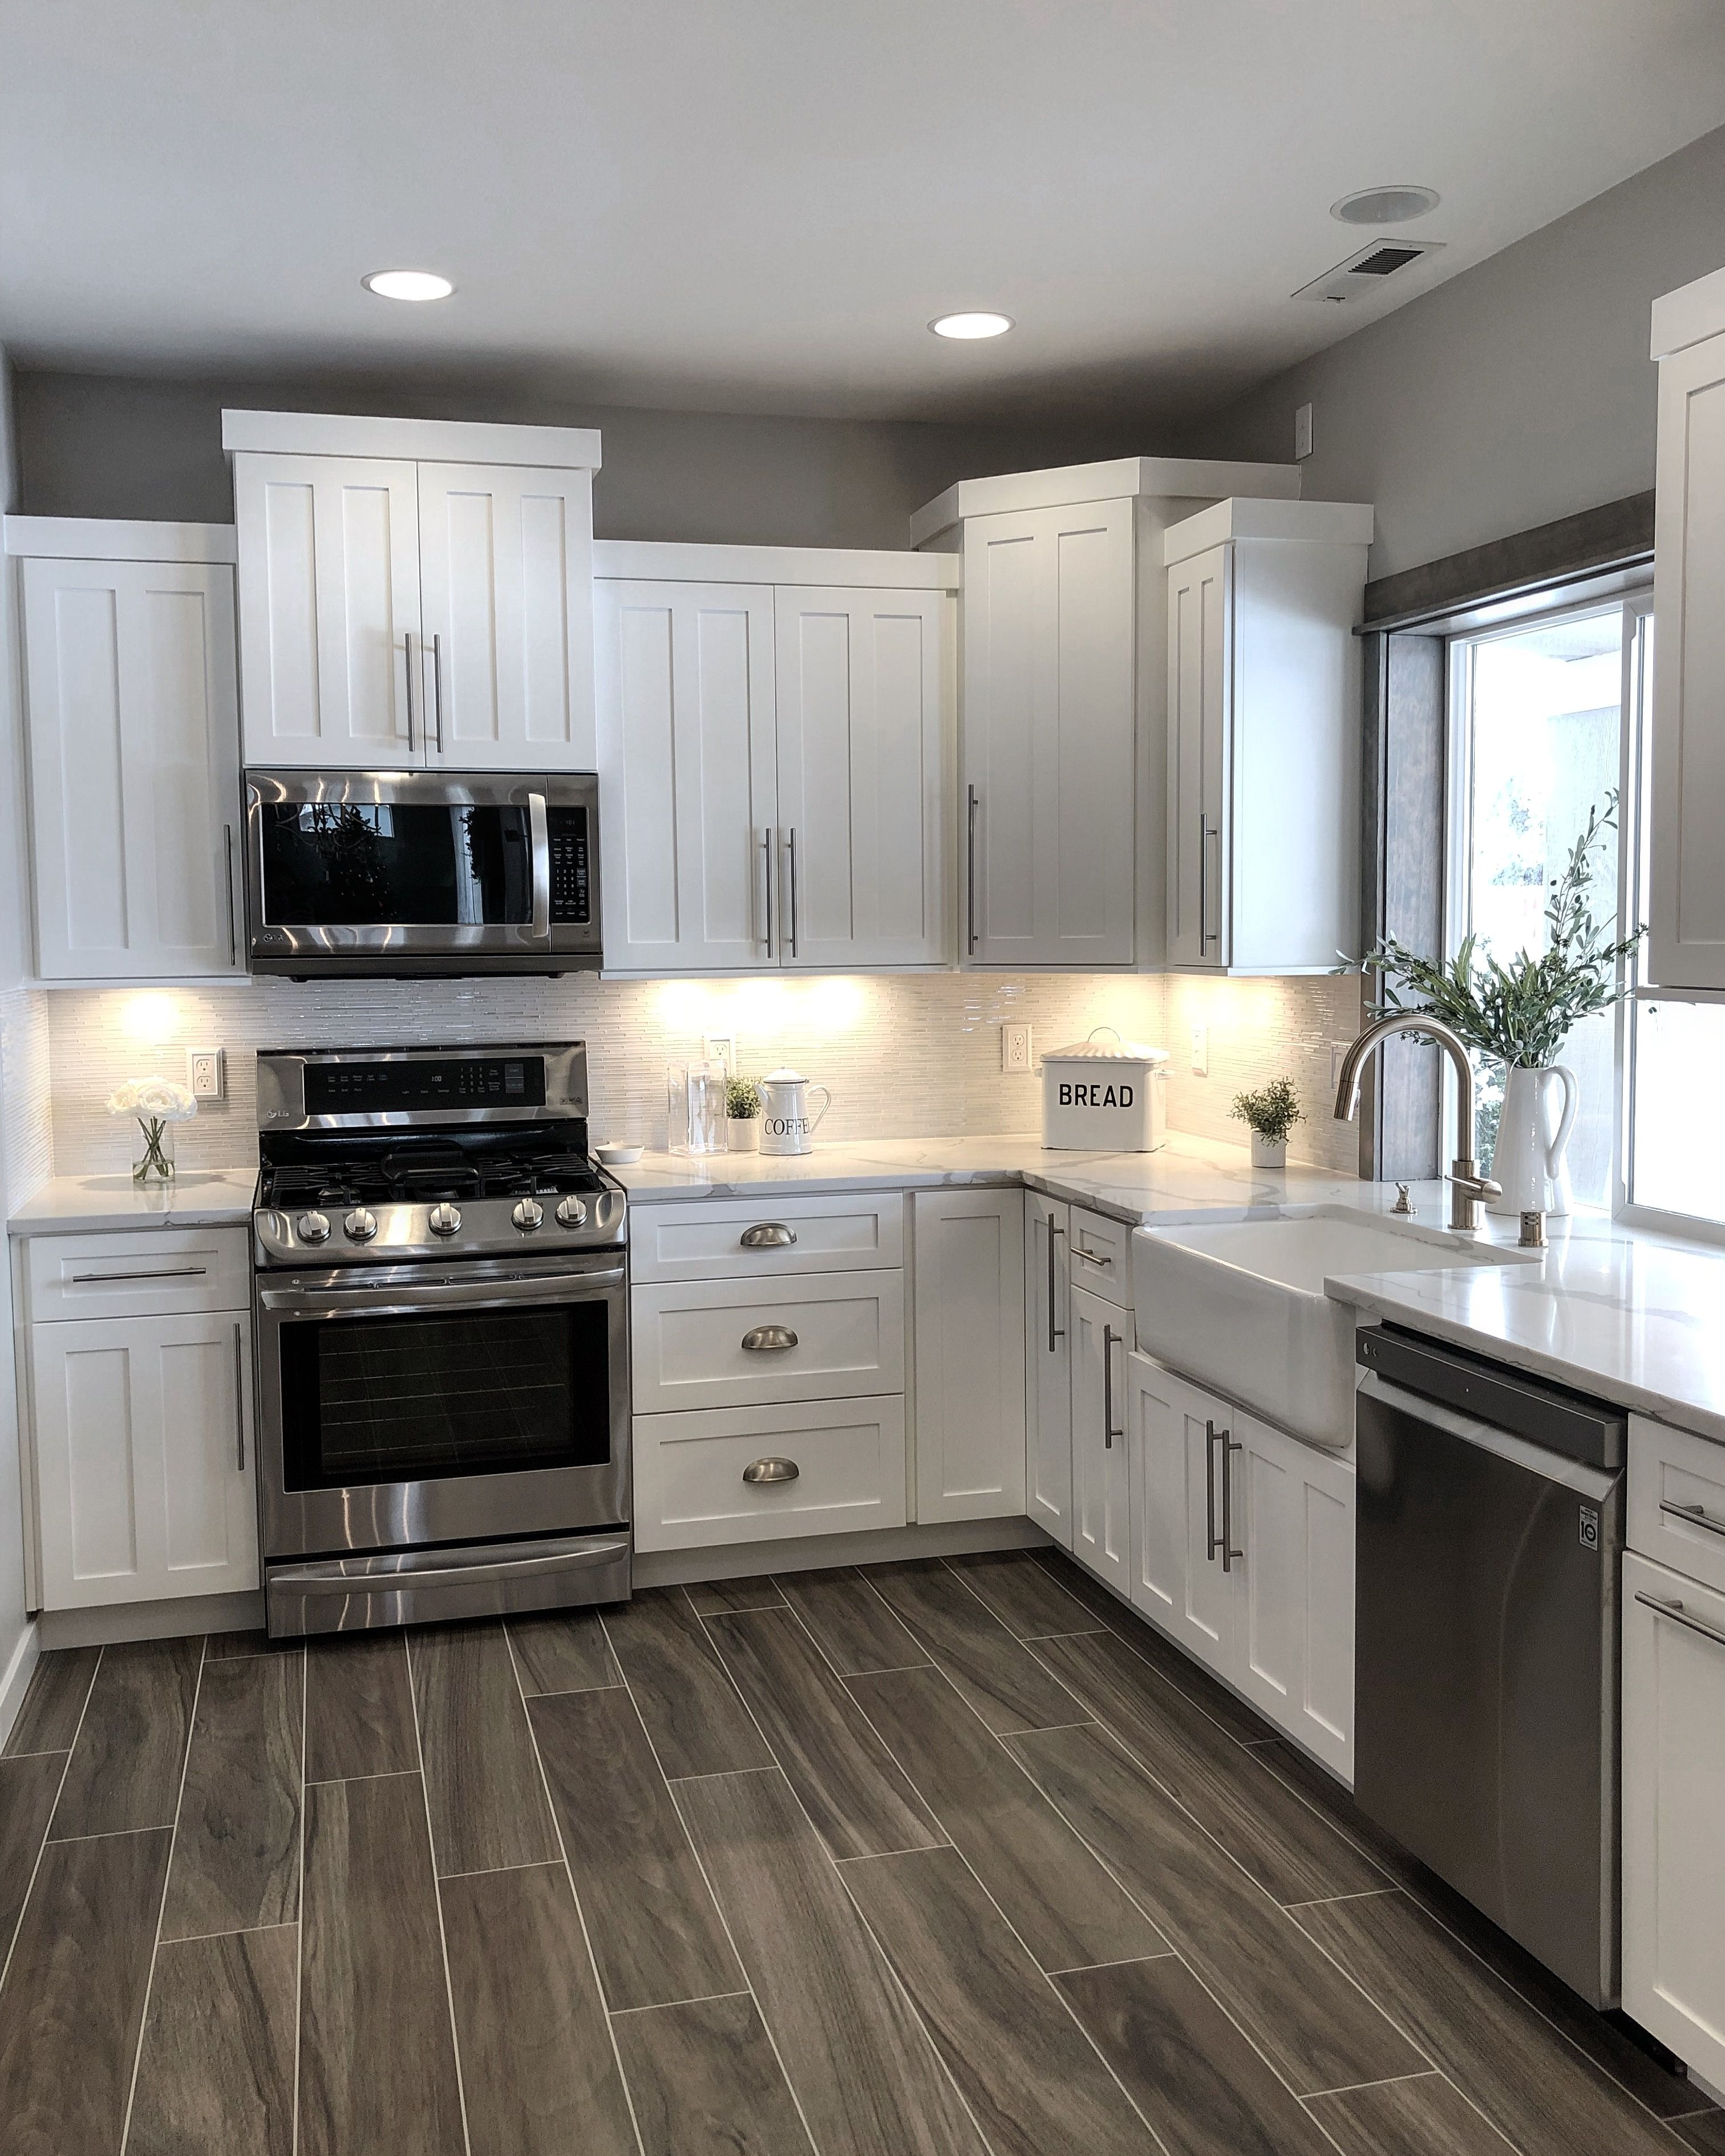 Great Color Scheme Even Though There Is A Lot Of White Doesn T Feel Too White White Kitchen Design Kitchen Color White Home Decor Kitchen